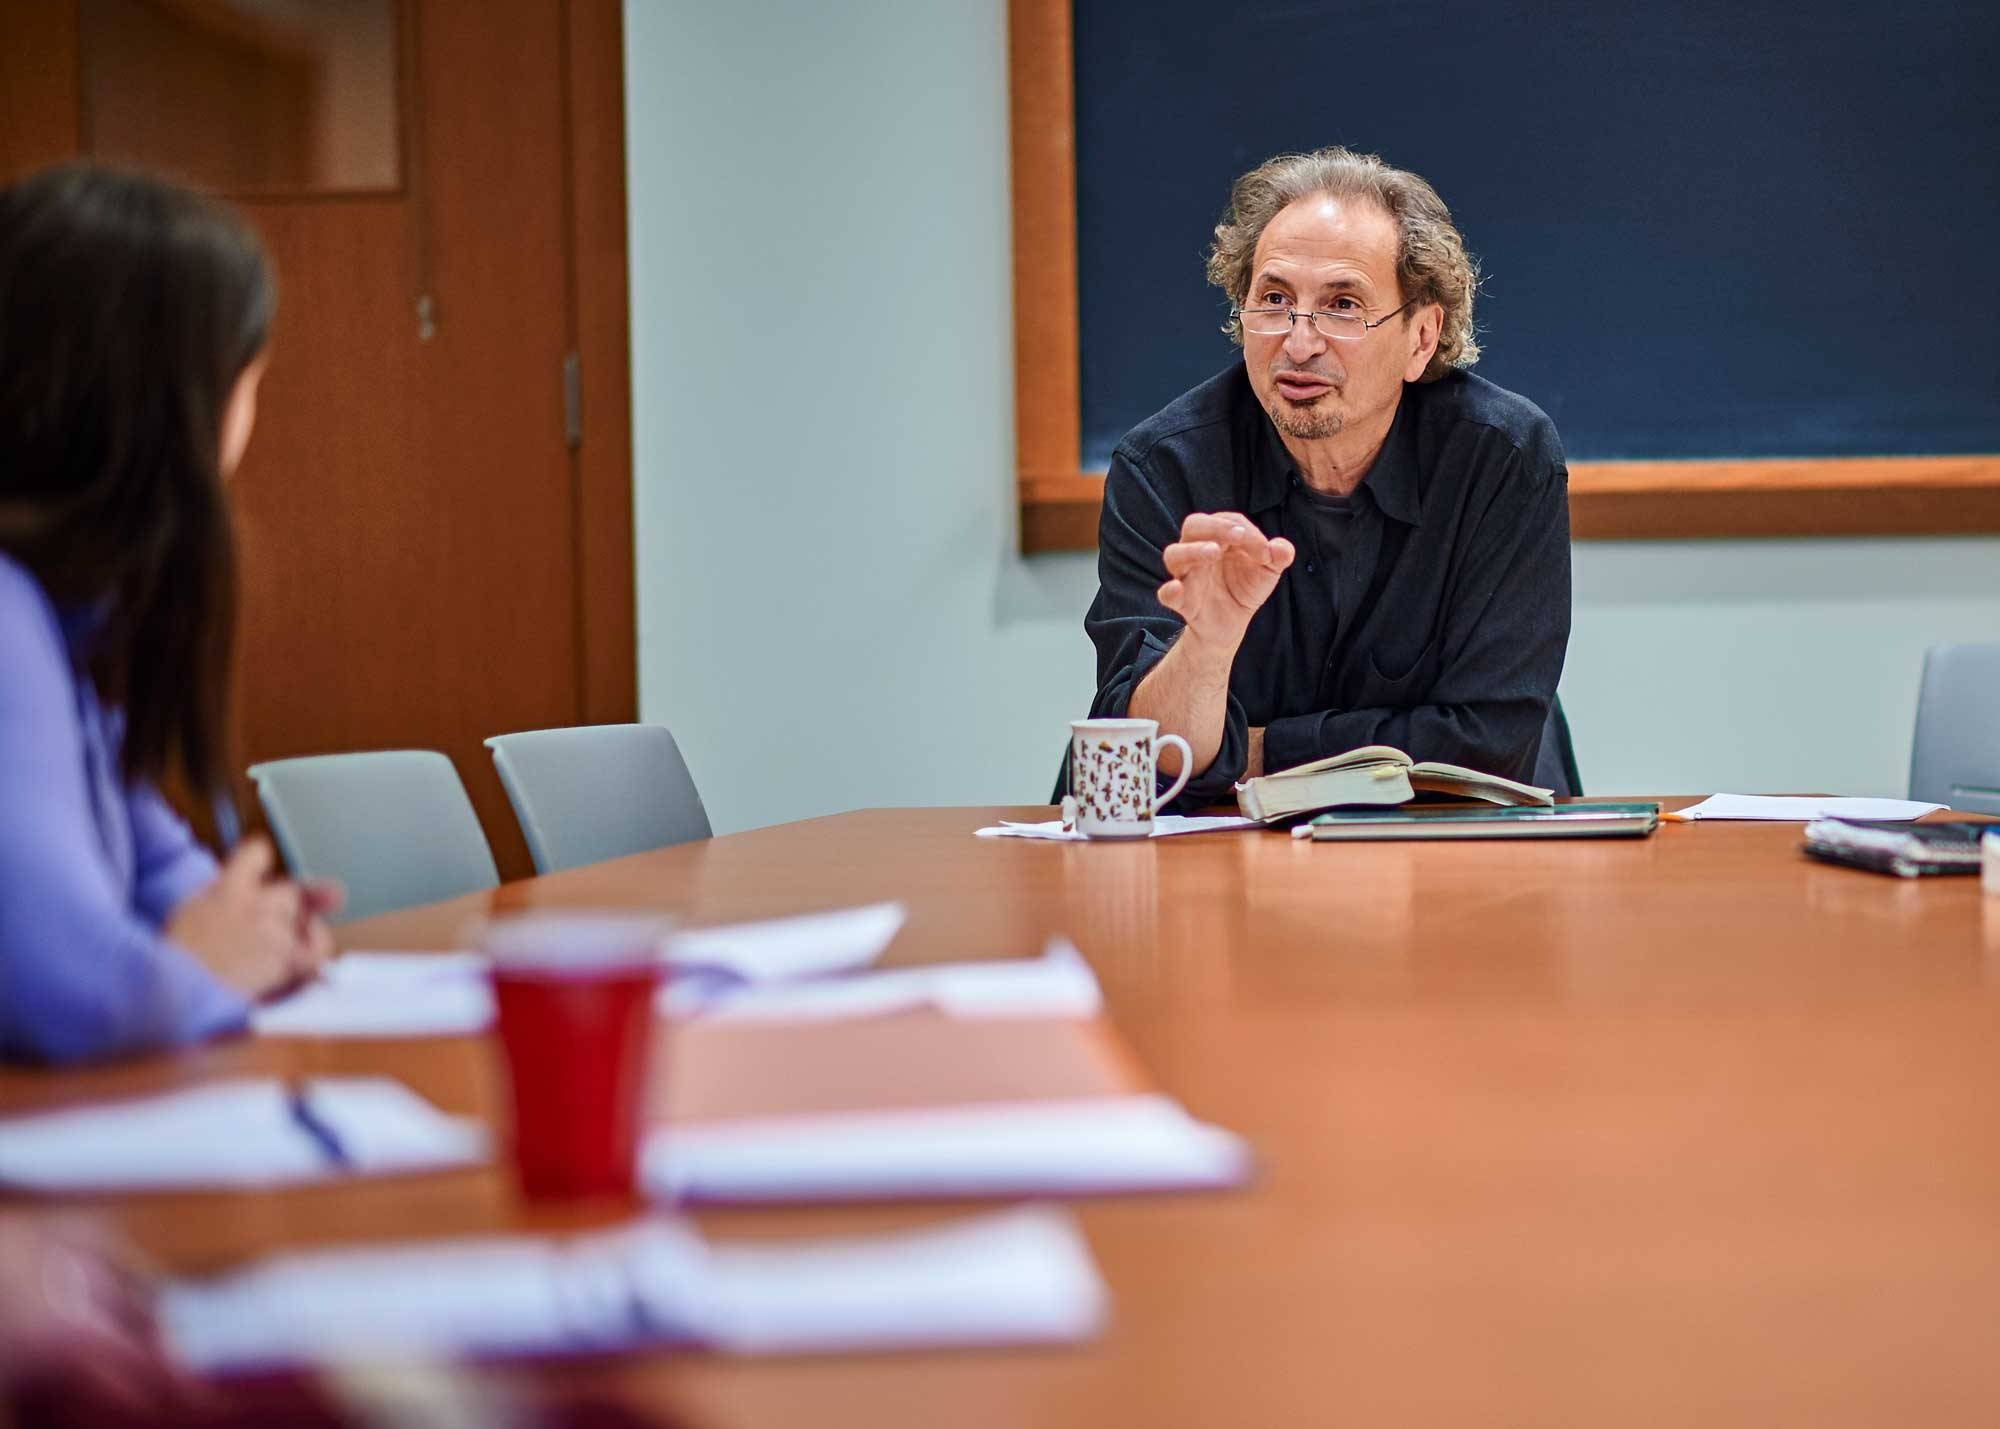 Professor Peter Balakian speaks to student while seated at a table